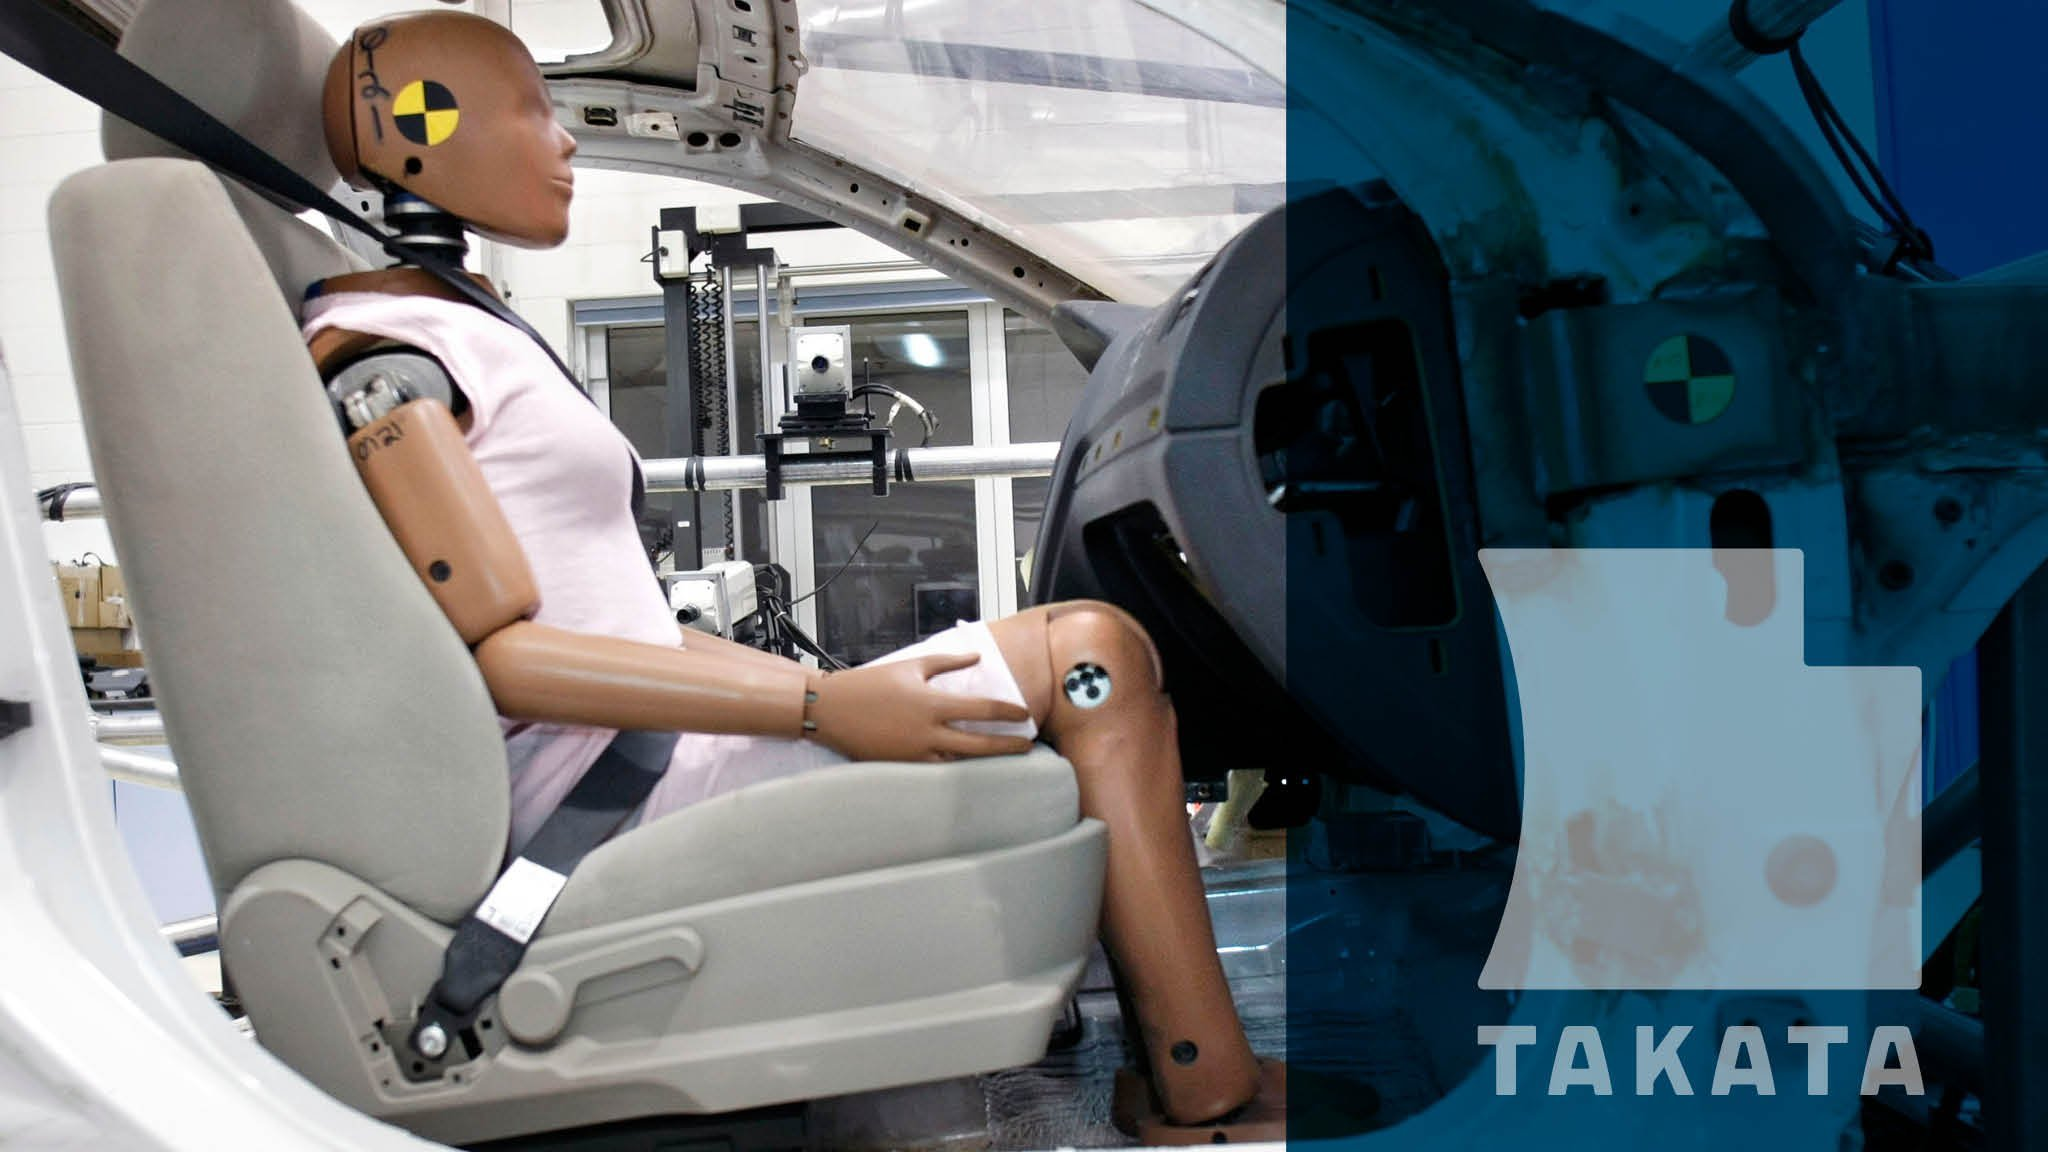 Takata's fate lies in hands of global carmakers after safety scandal